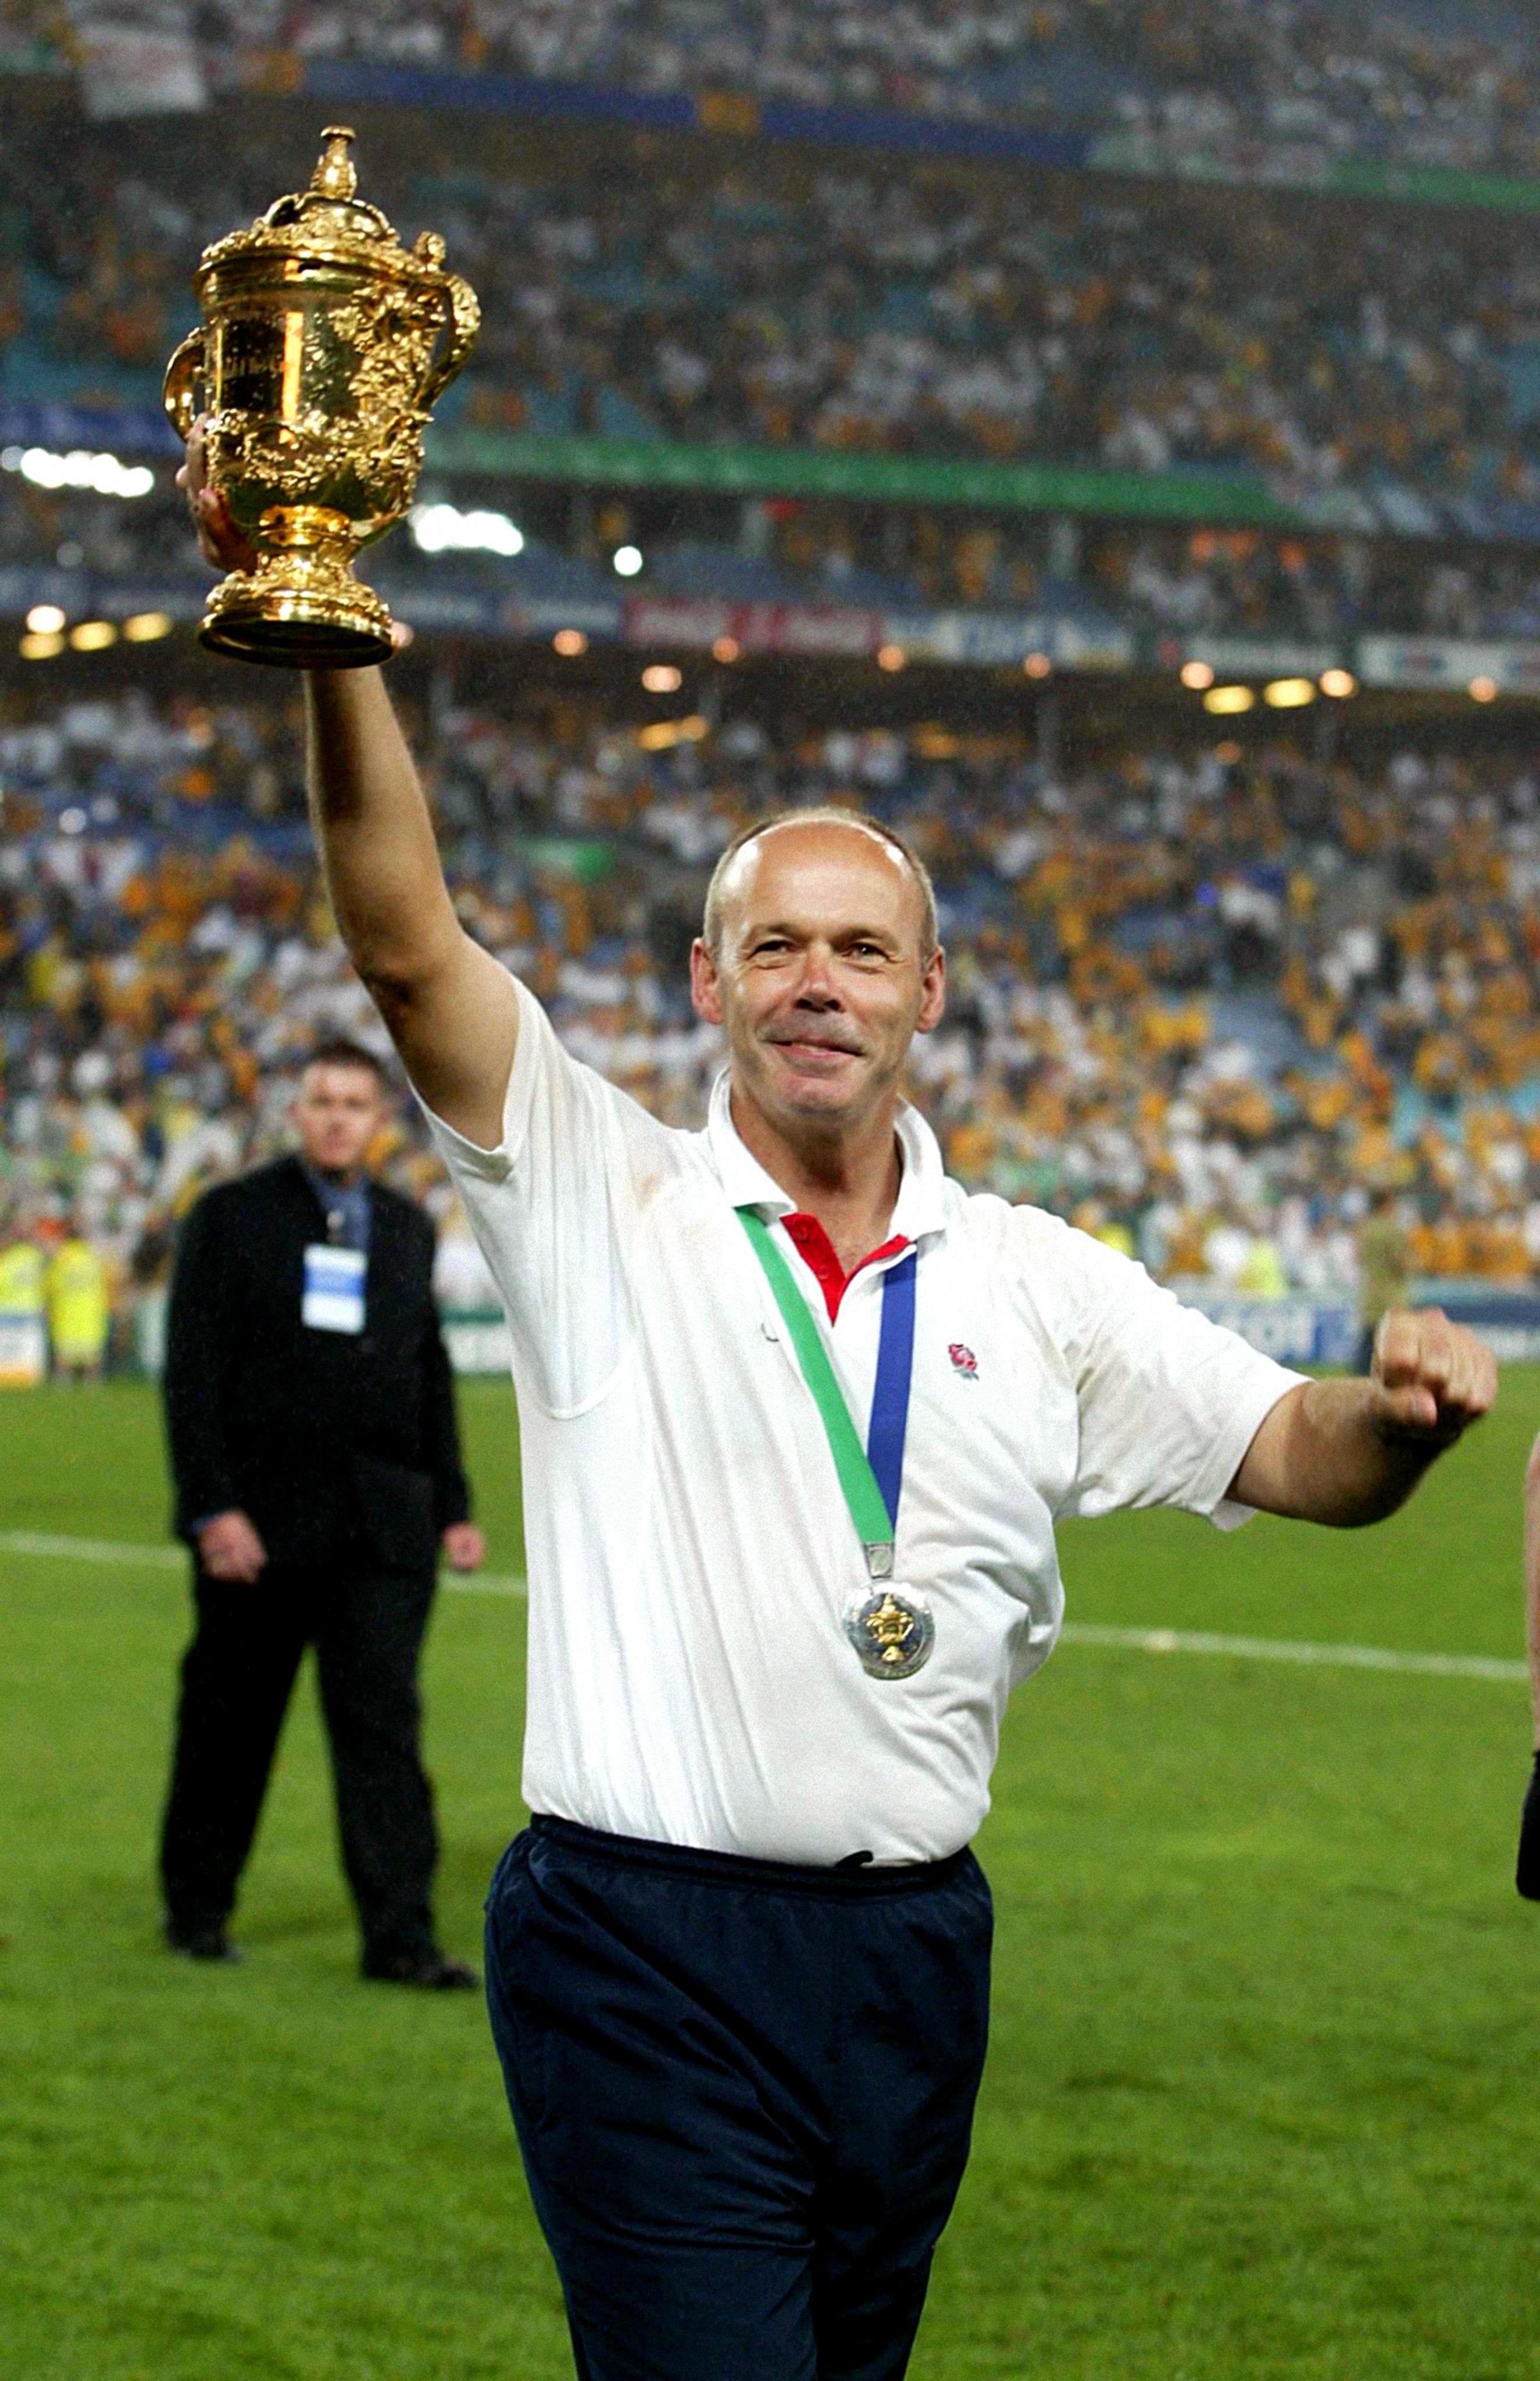 2003 Rugby World Cup winning coach Sir Clive Woodward has been critical of Eddie Jones